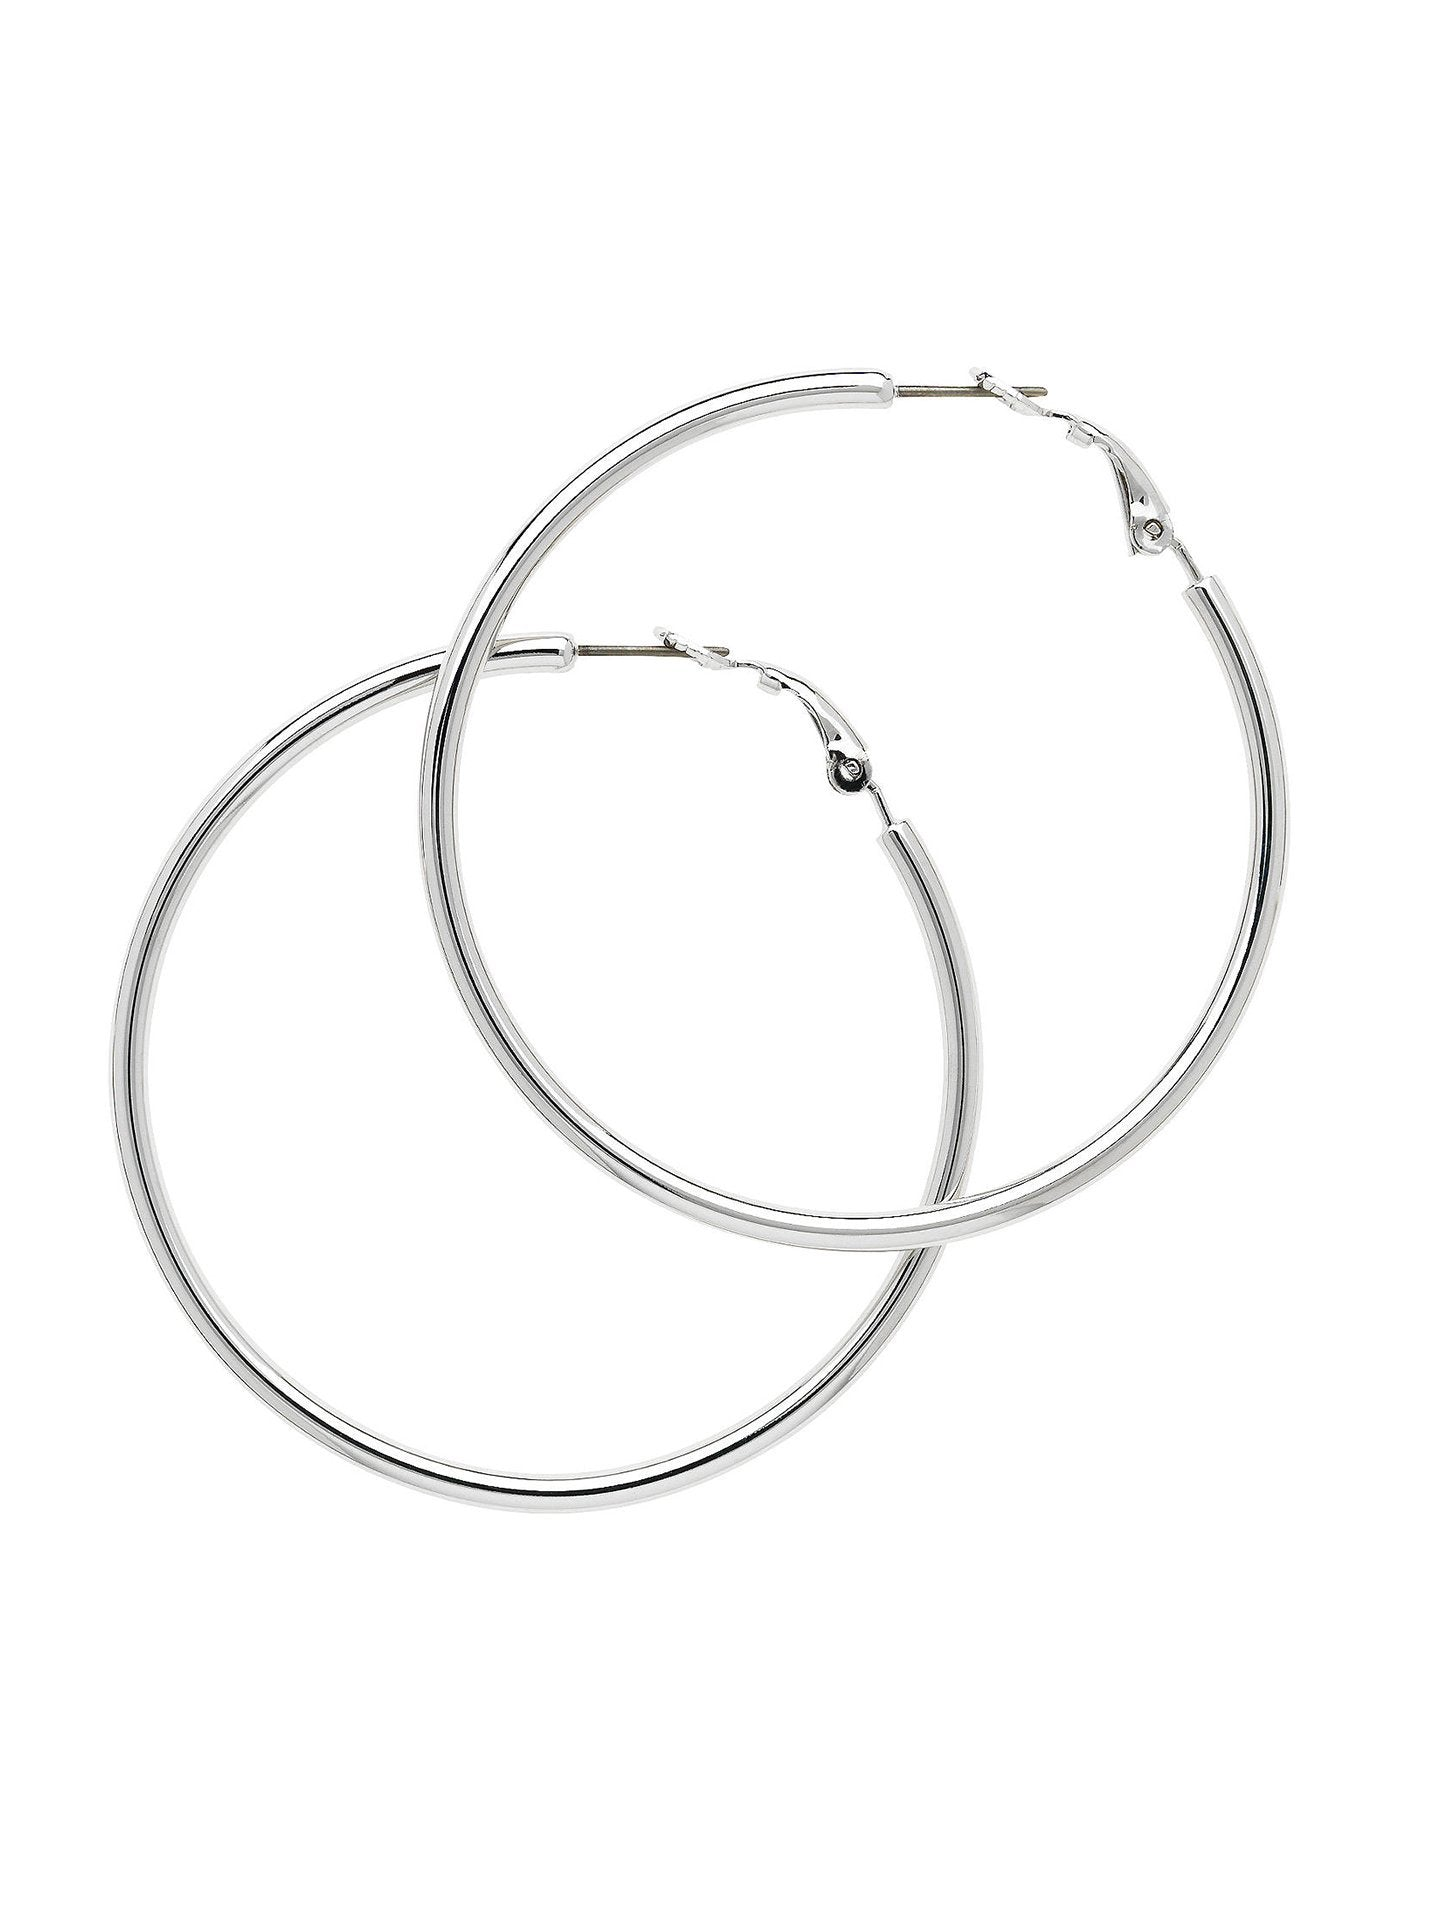 Rhodium Medium Hoop Earrings